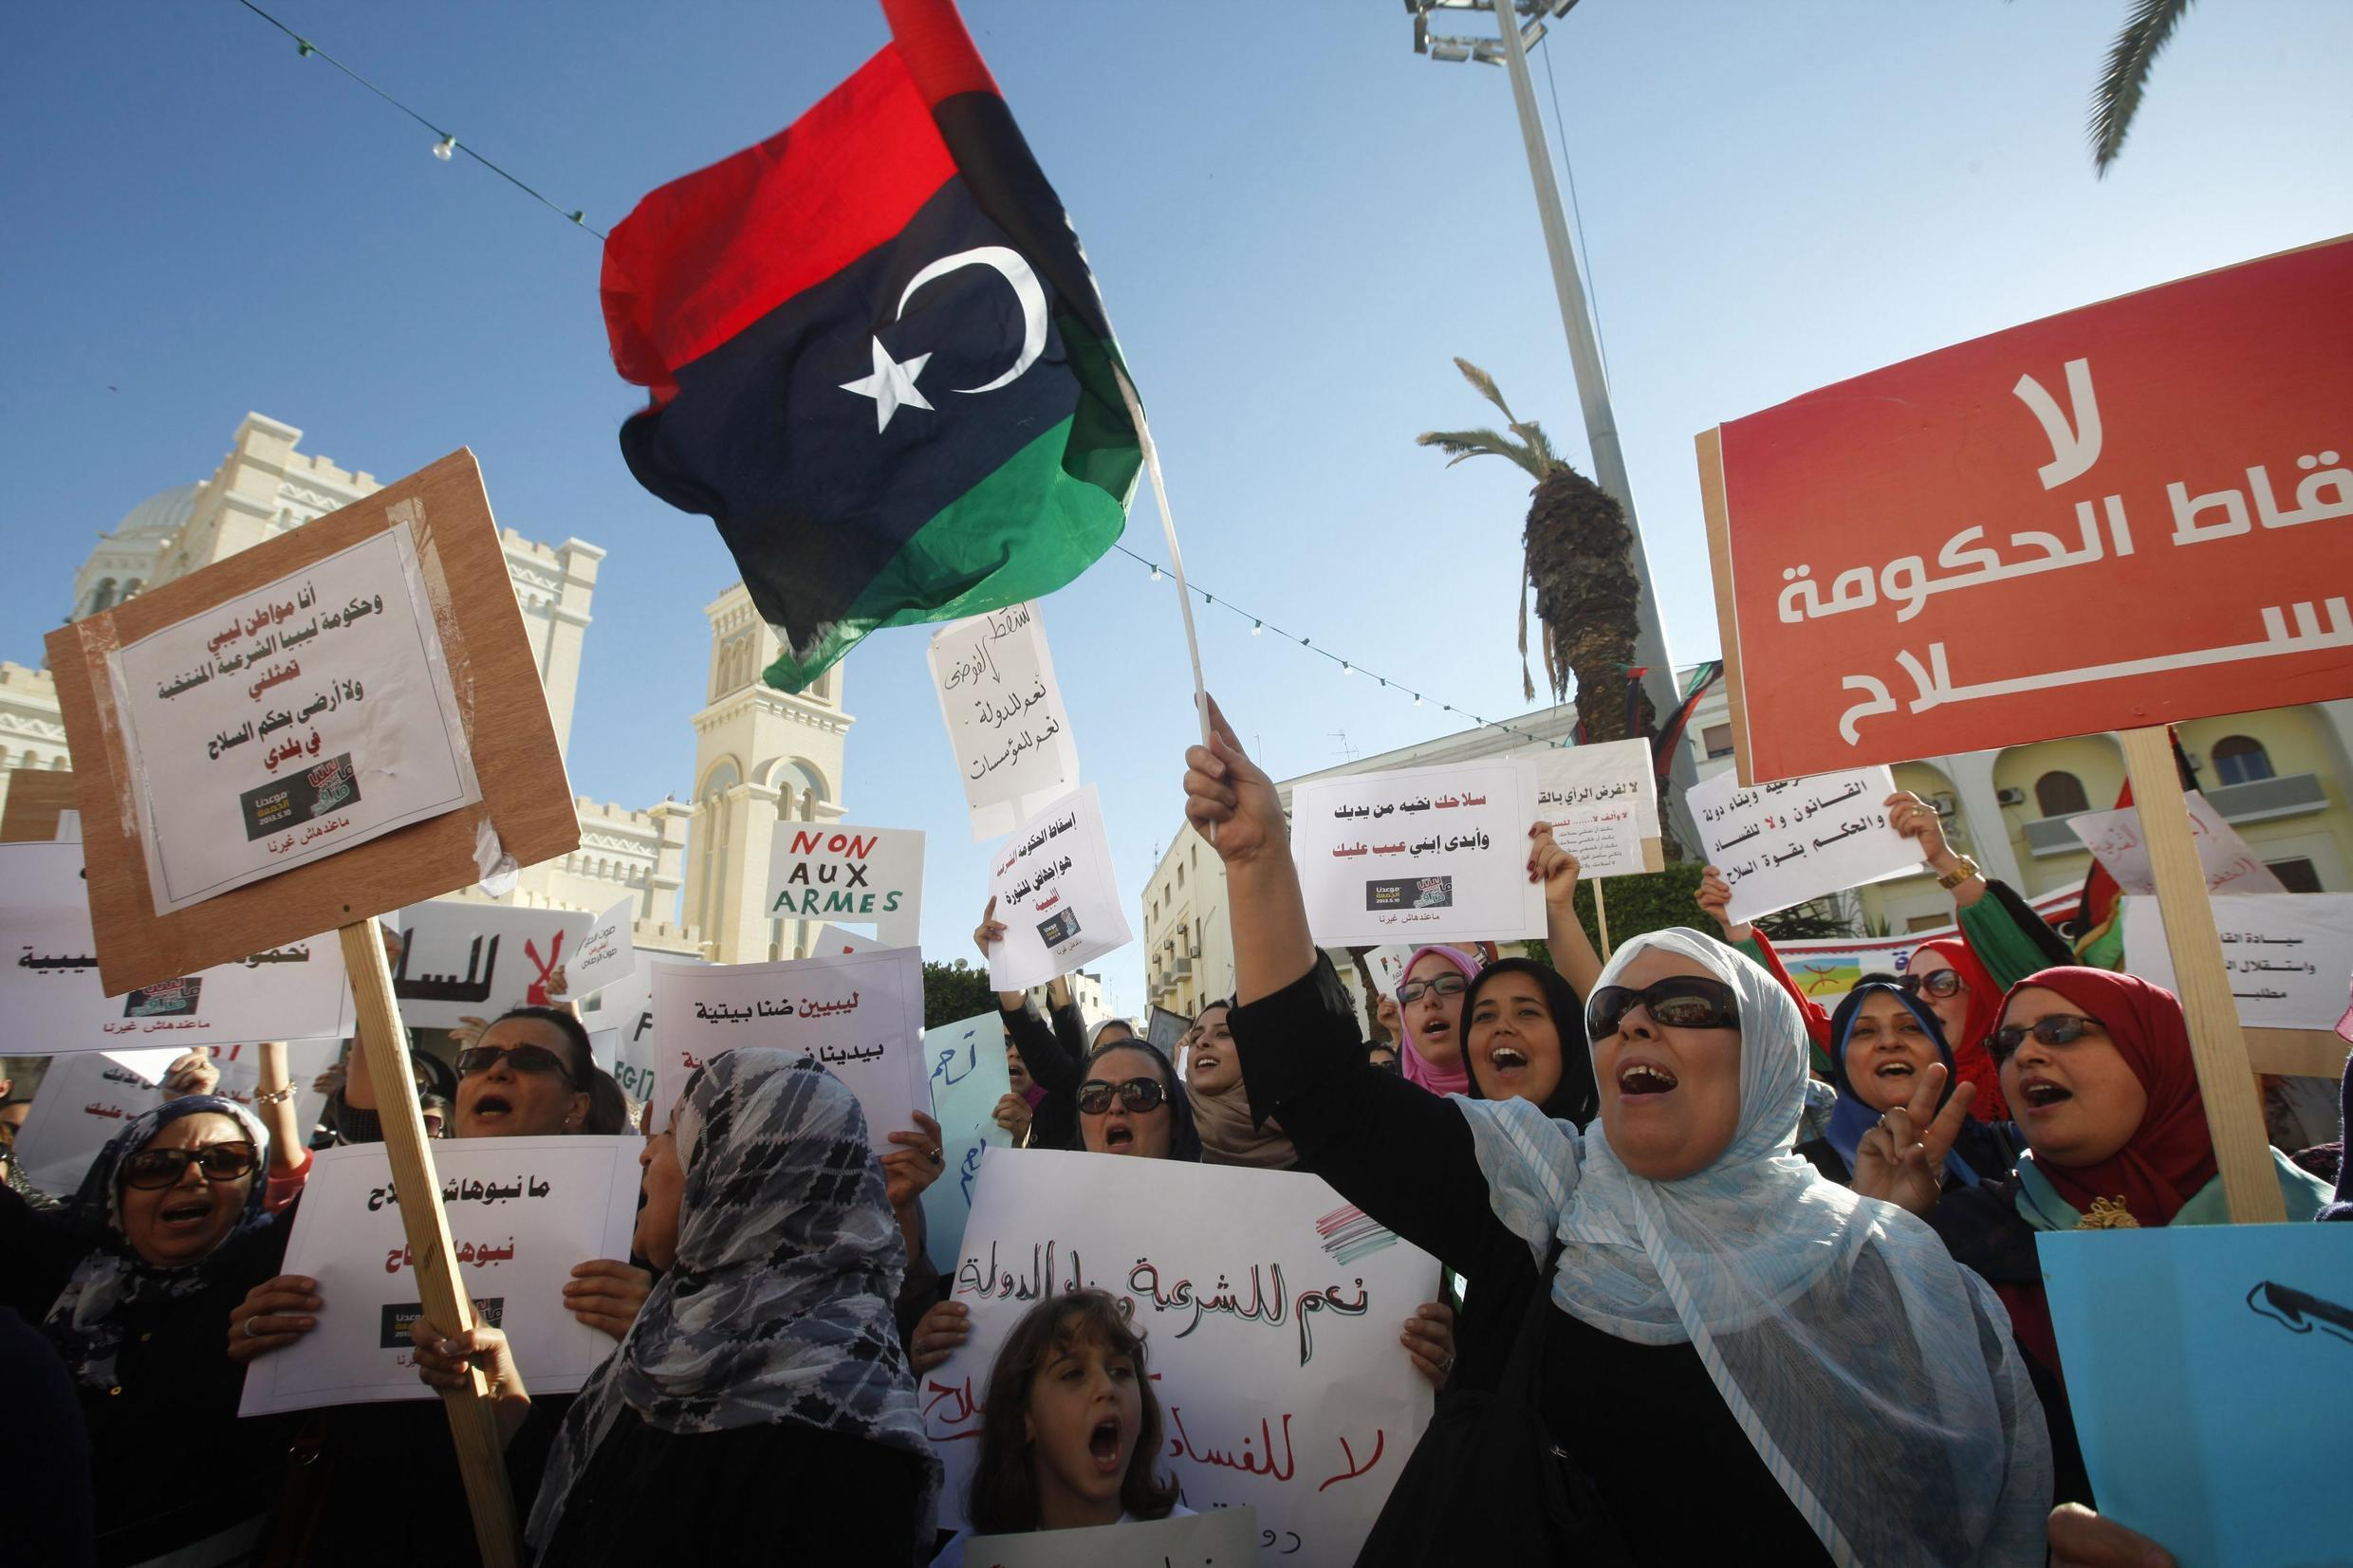 Pro-government protesters with signs and the Libyan flag rally against the use of violence, after gunmen seized control of two government ministries, in Algeria Square in Tripoli.